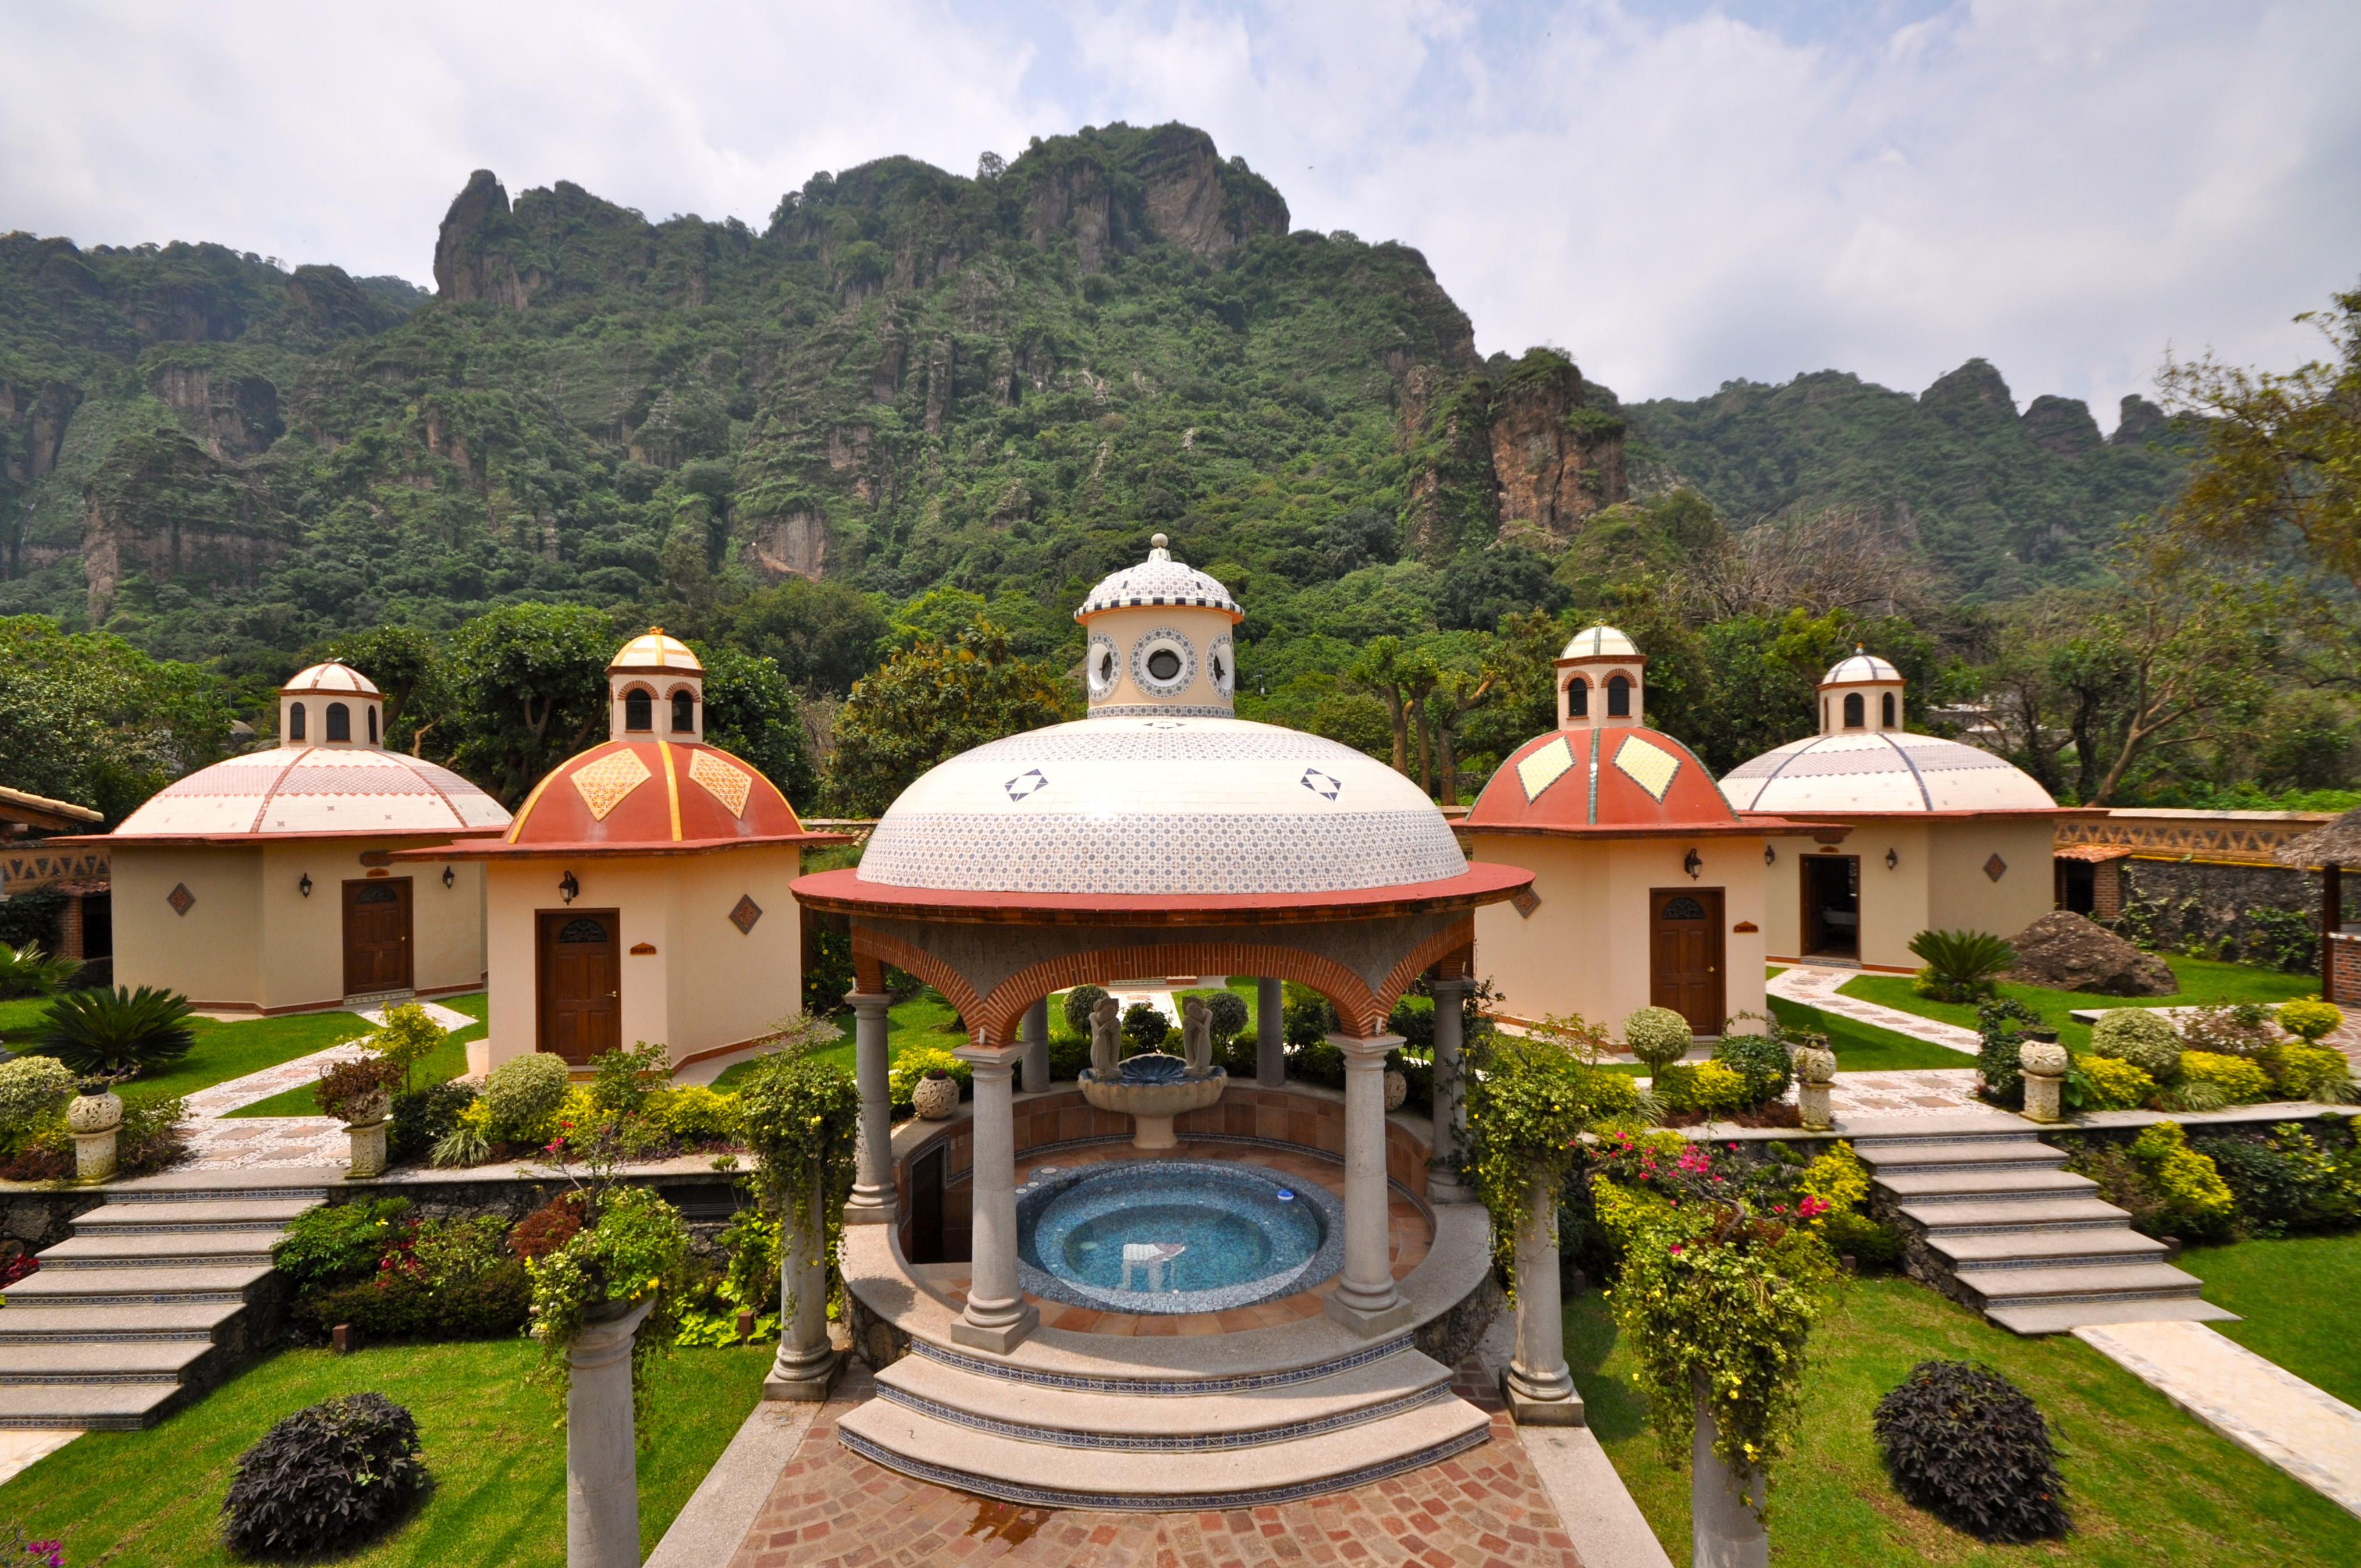 La Buena Vibra Retreat & Spa